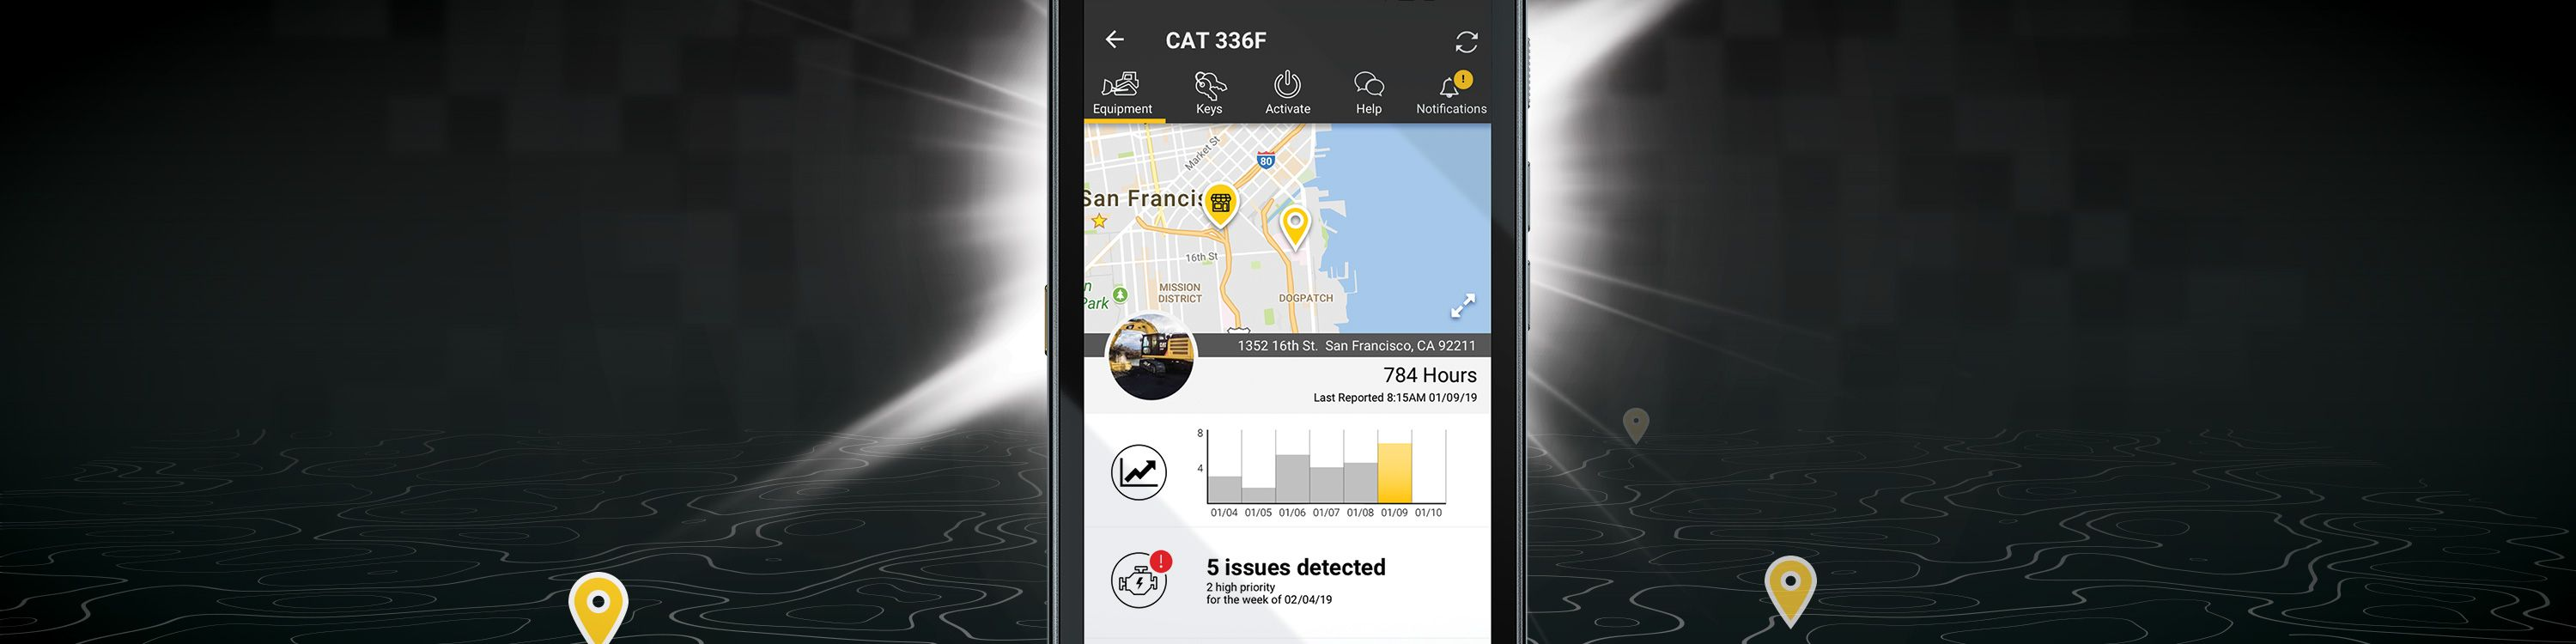 App, Cat App, Fleet Management, Product Link, Telematics, Bucket List